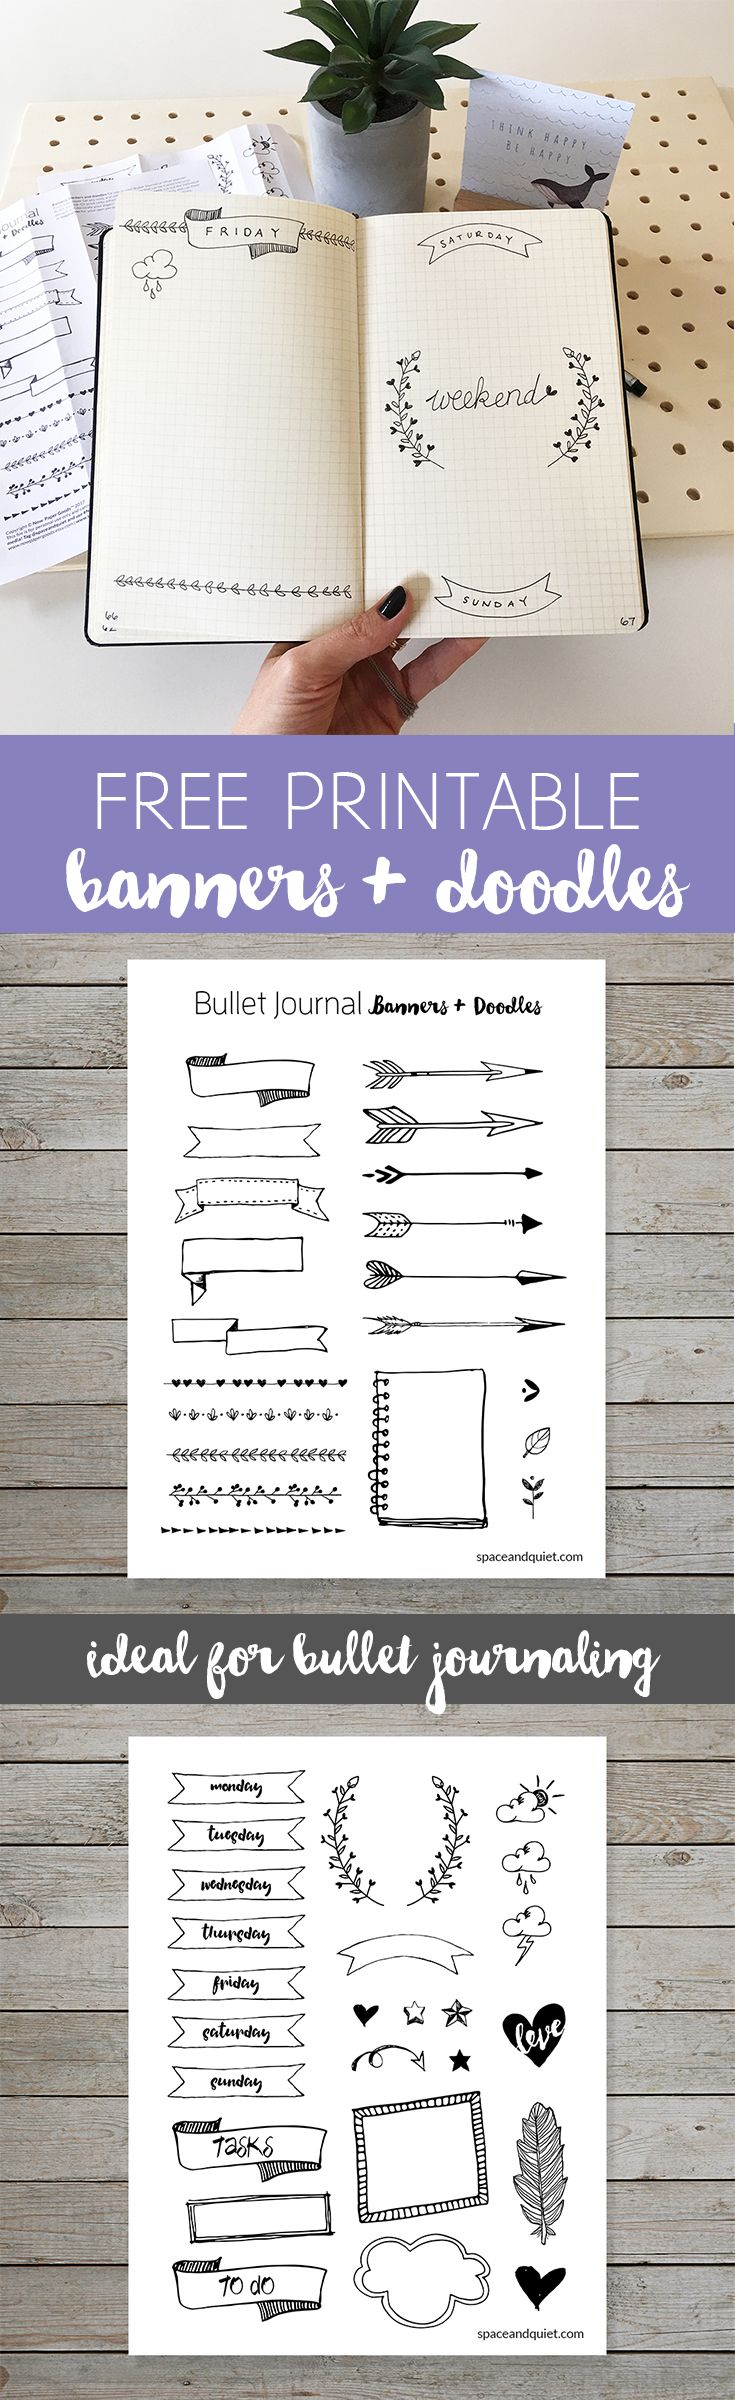 Scrapbook journaling ideas free - Free Bullet Journal Printable Banners And Doodles